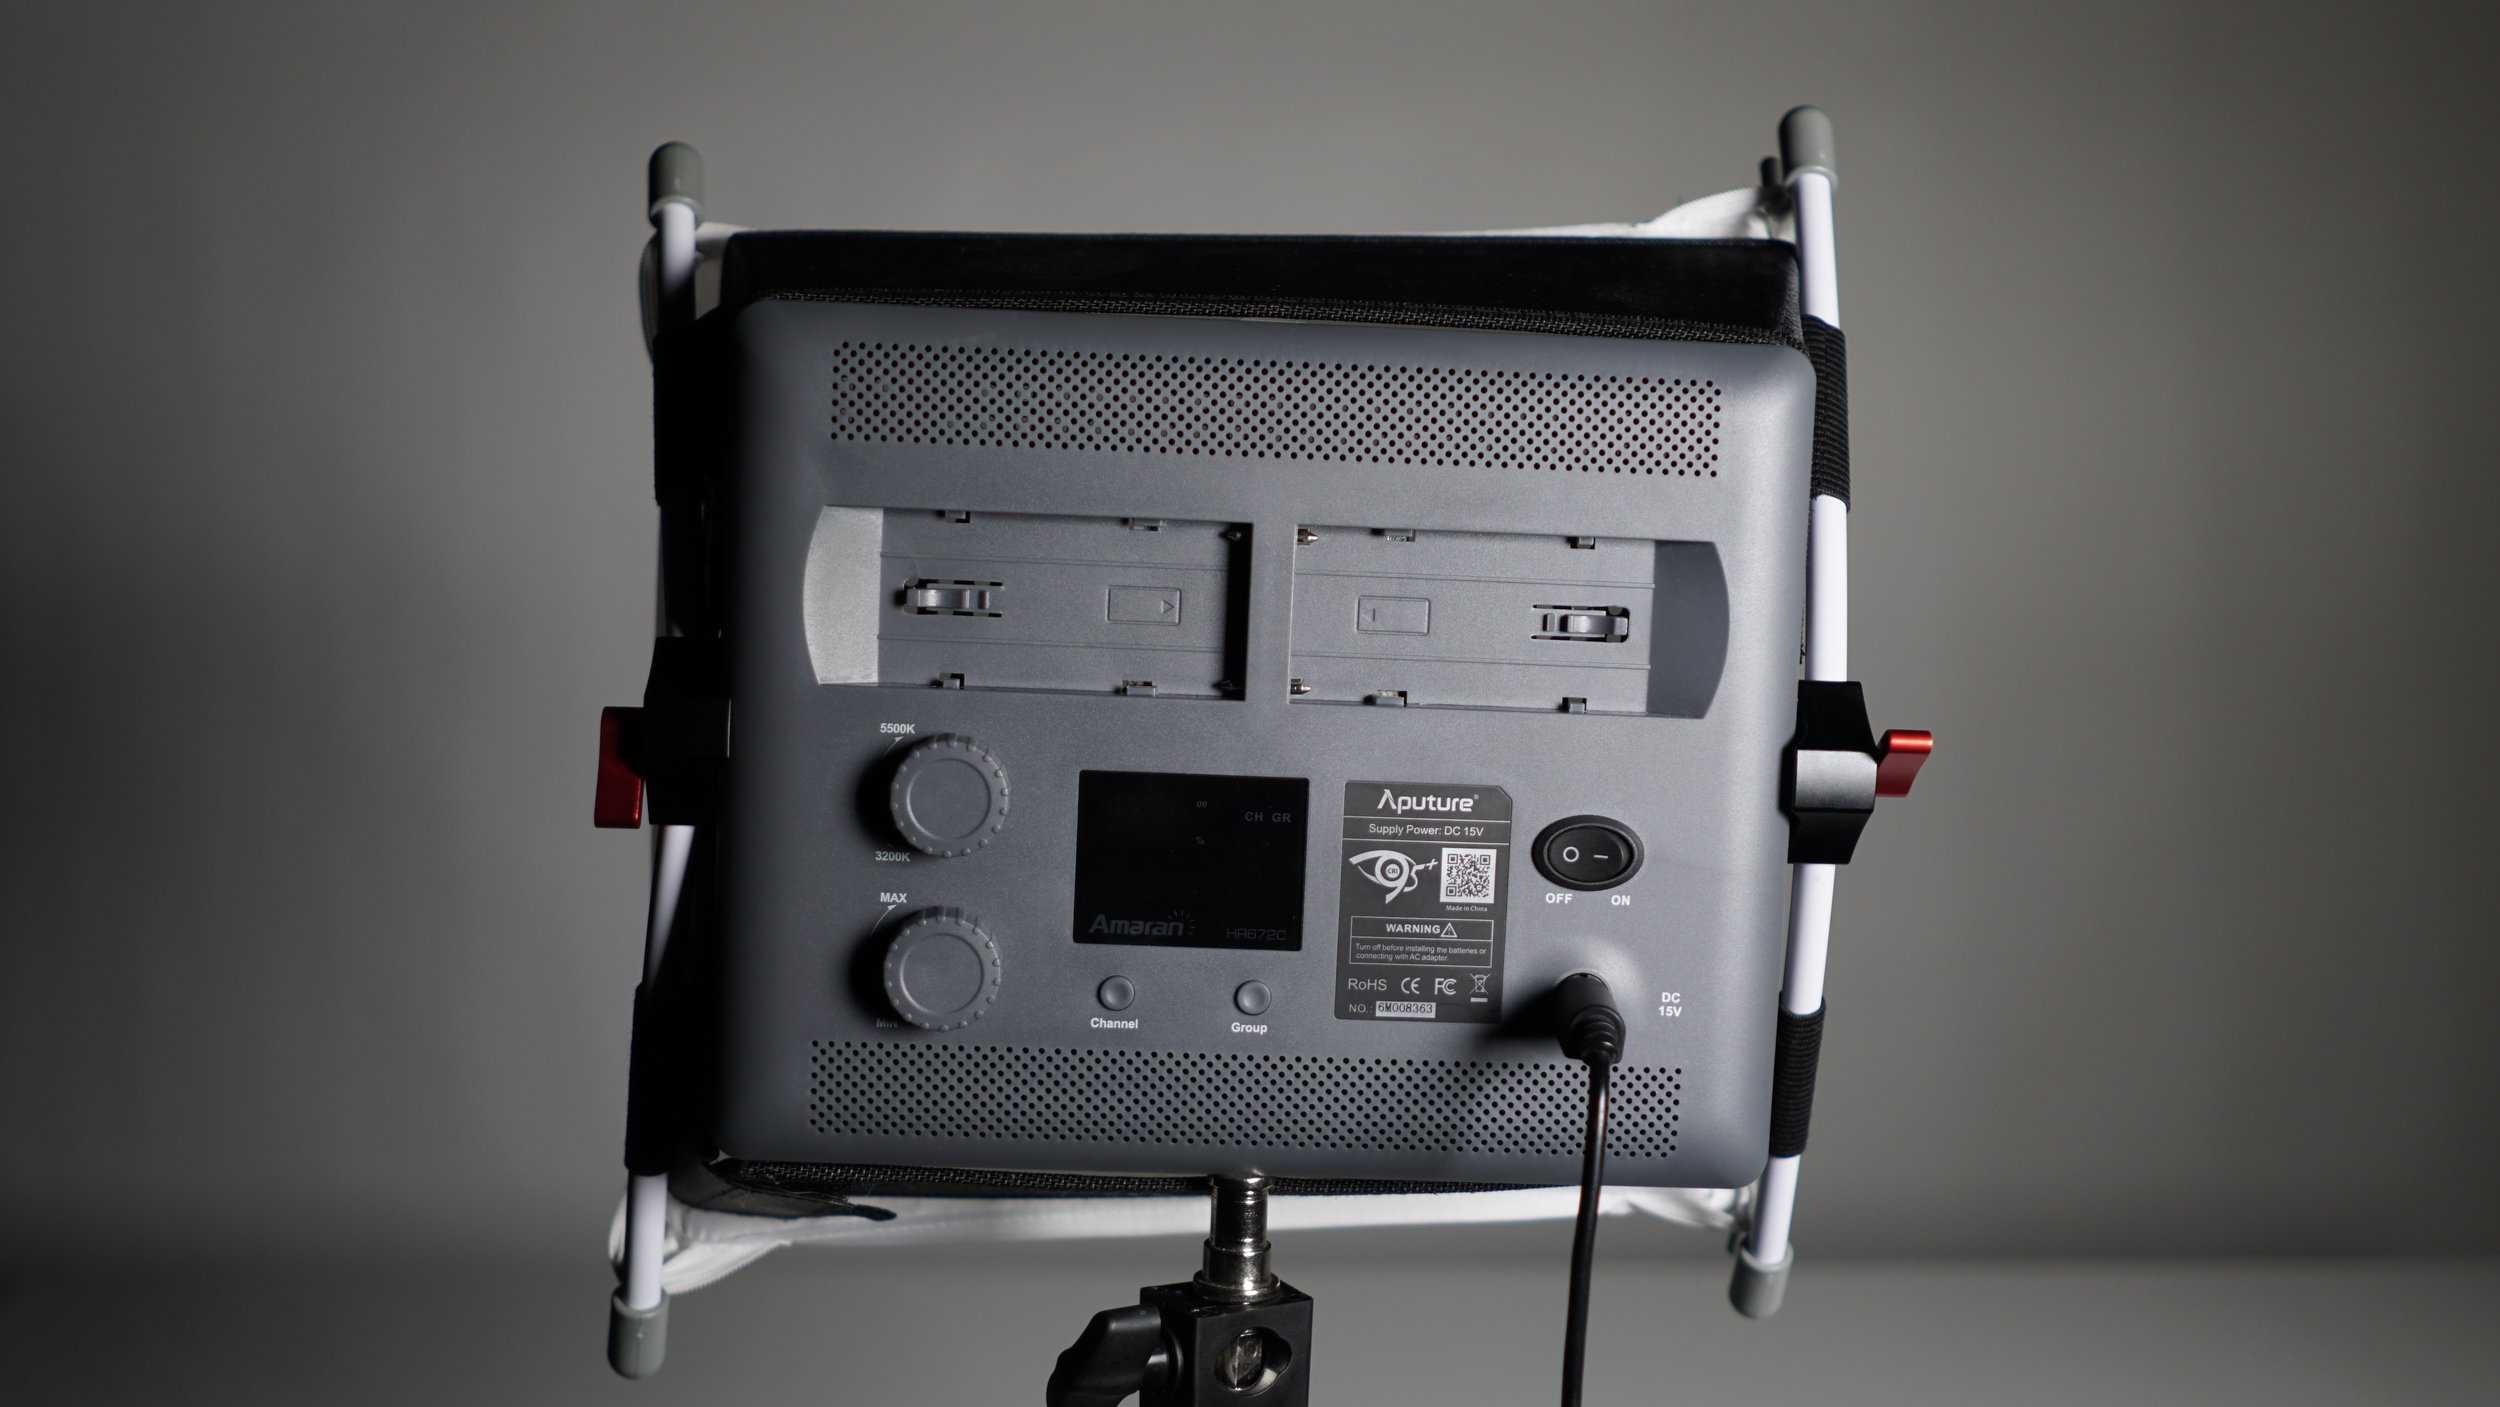 Still, the net result is that Aputure's EZ Box clears the air vents and controls much more easily than the D-Fuse.Now if only it had more surface area and the front diffuser fit more tightly.